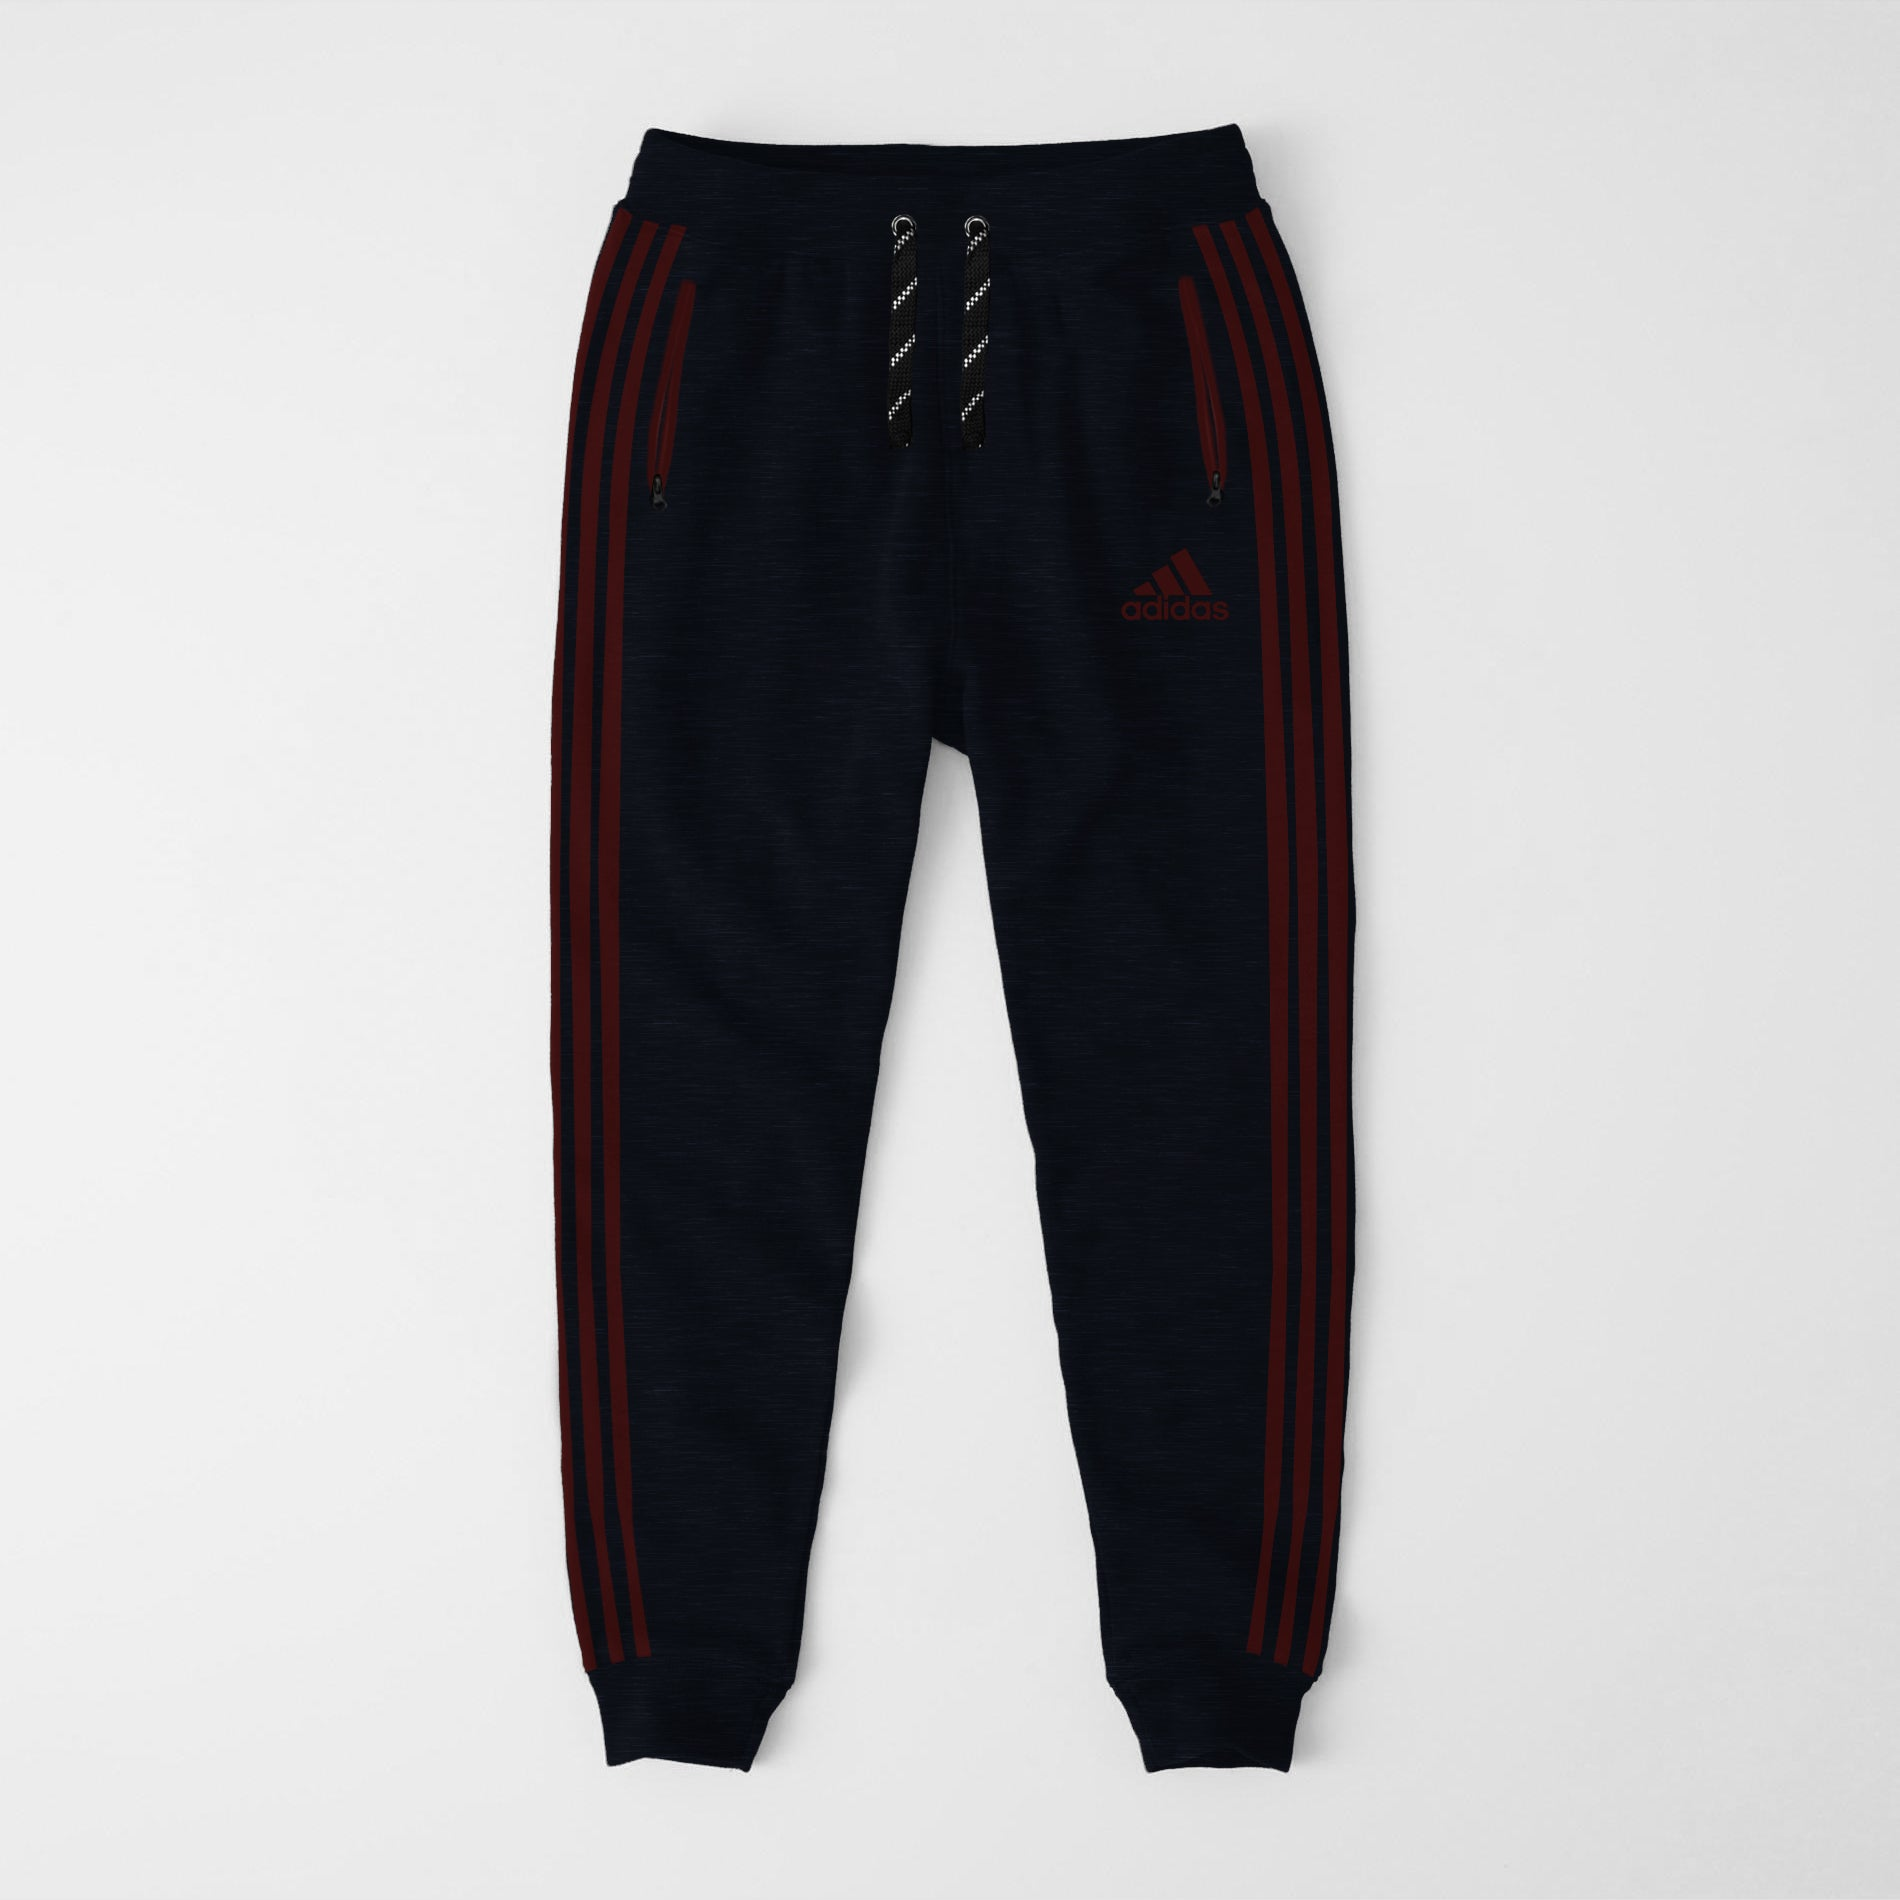 Adidas Single Jersey Slim Fit Jogger Trouser For Men-Dark Navy Melange With Burgundy Stripes-NA8252